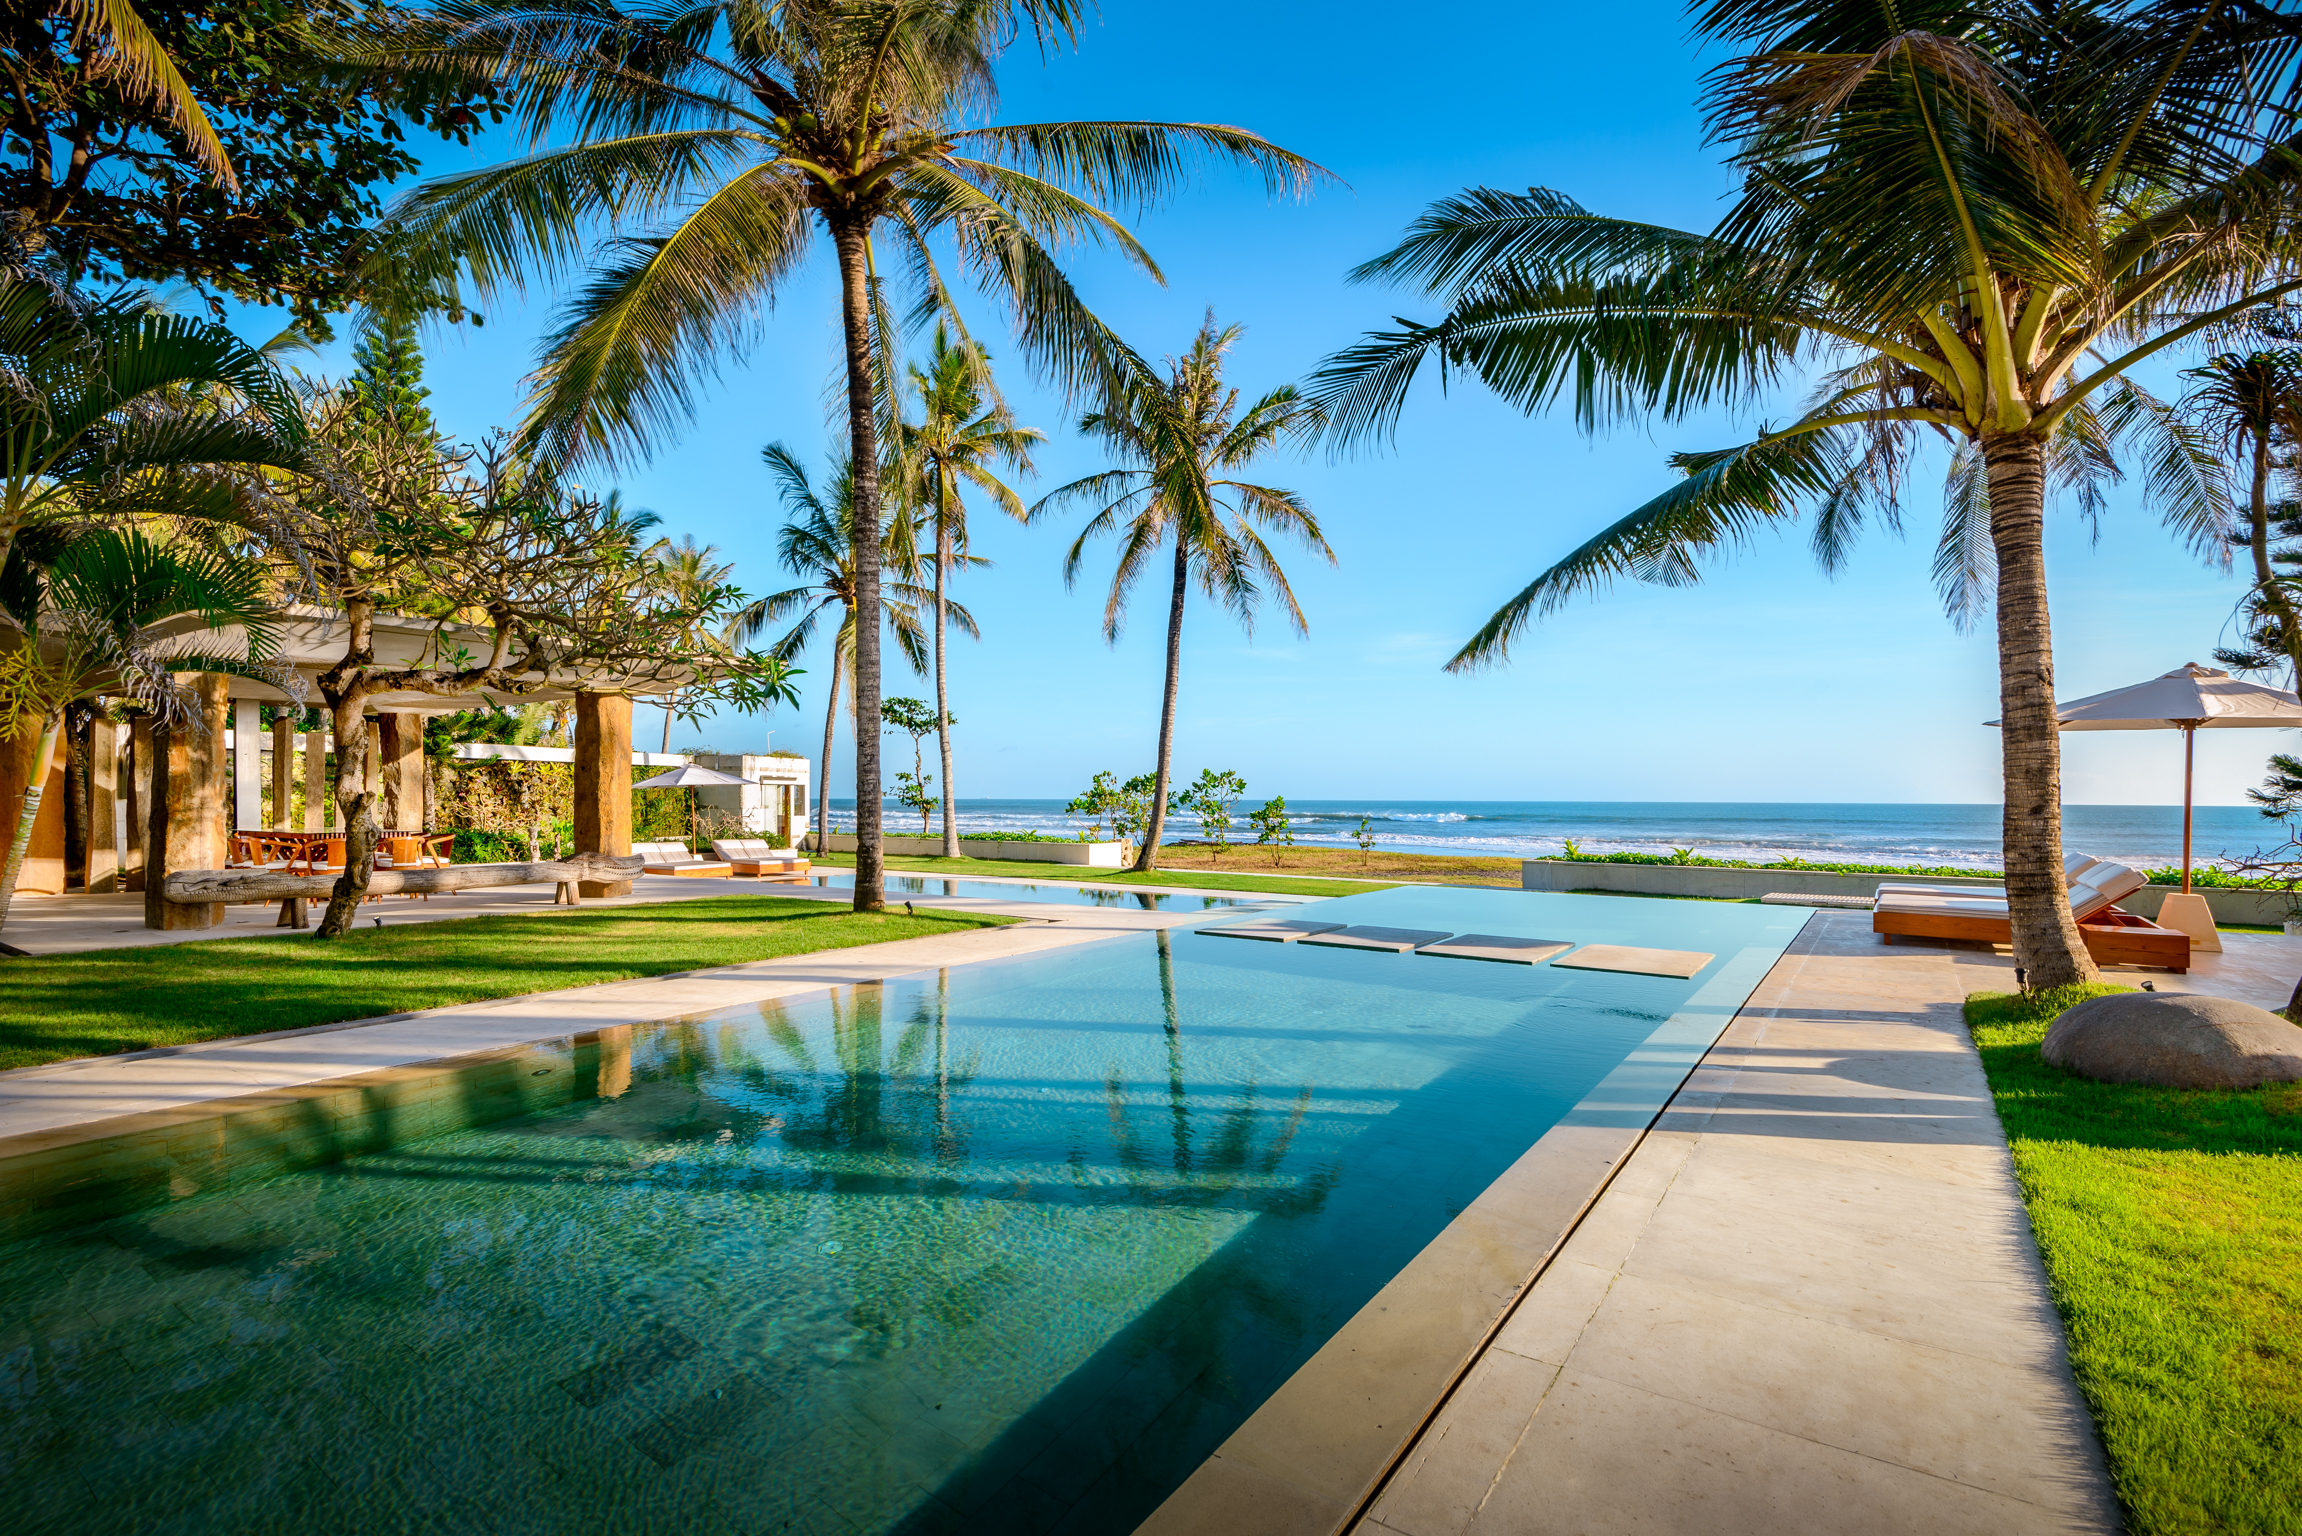 Villa Weddings - Our weddings in sprawling beachfront villas where our couples enjoy views of an Indian ocean sunset.